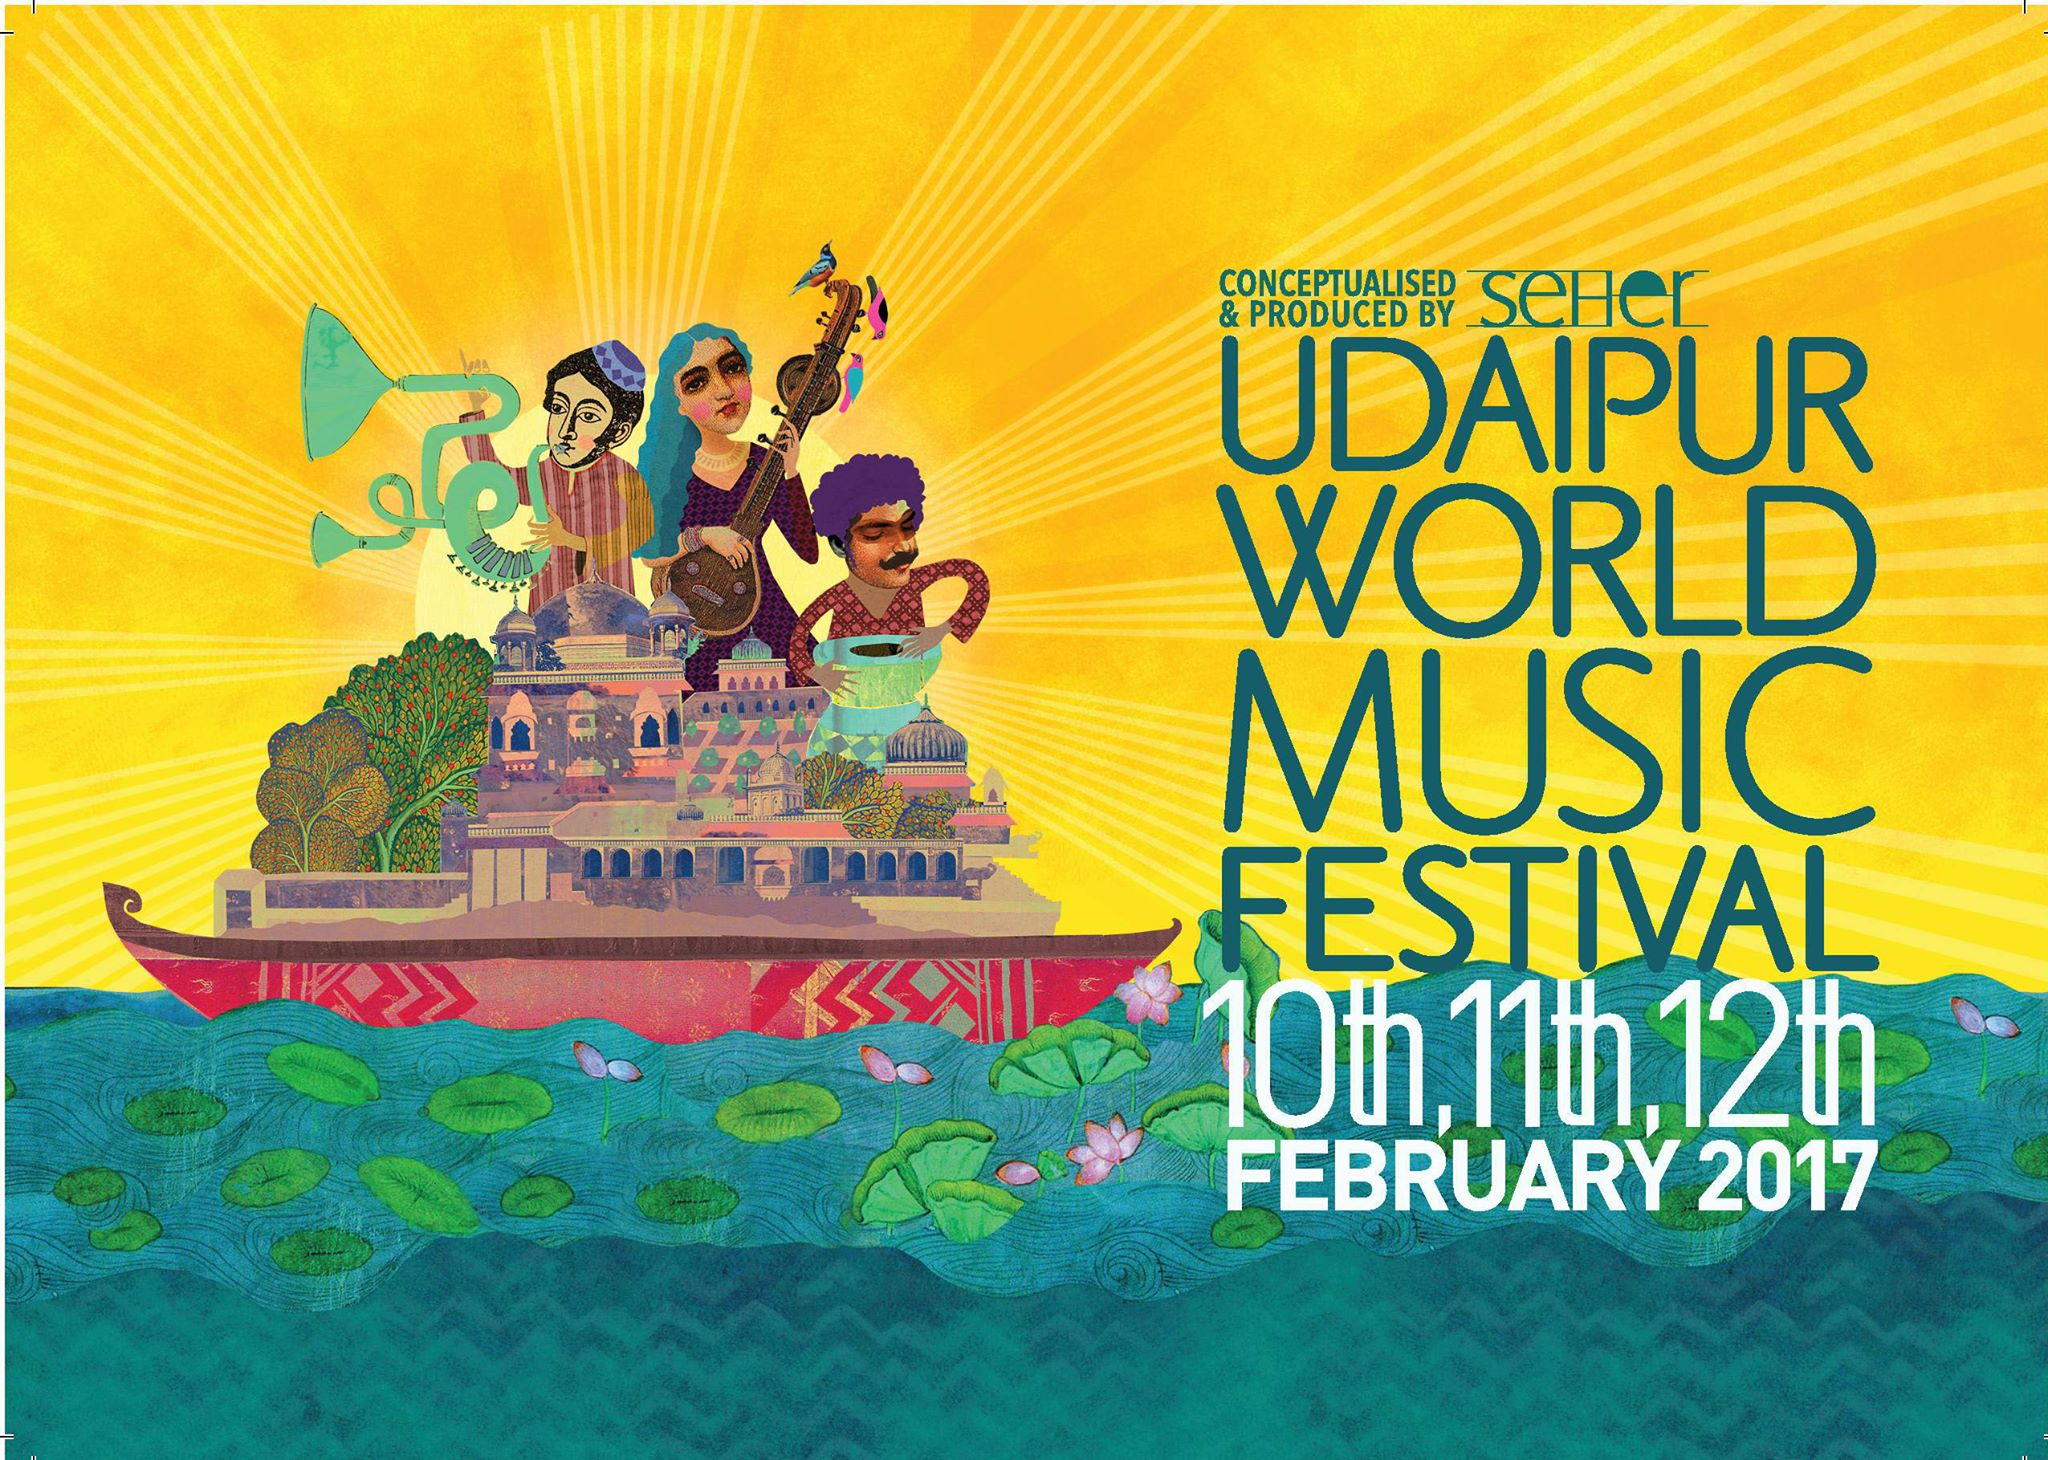 World Music Festival 2017 Udaipur